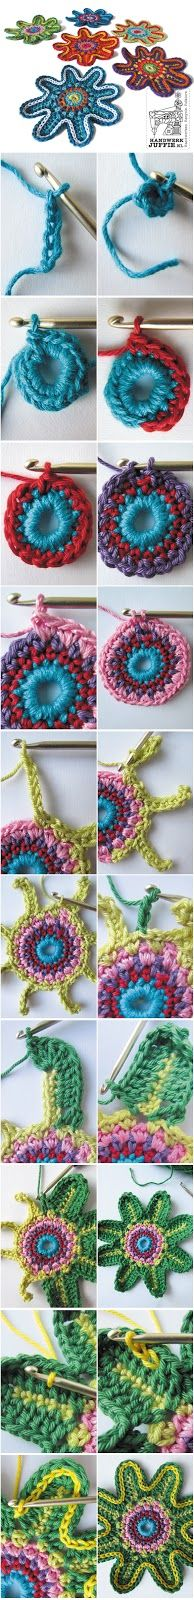 Crochet Flower - Photo Tutorial ❥ 4U // hf